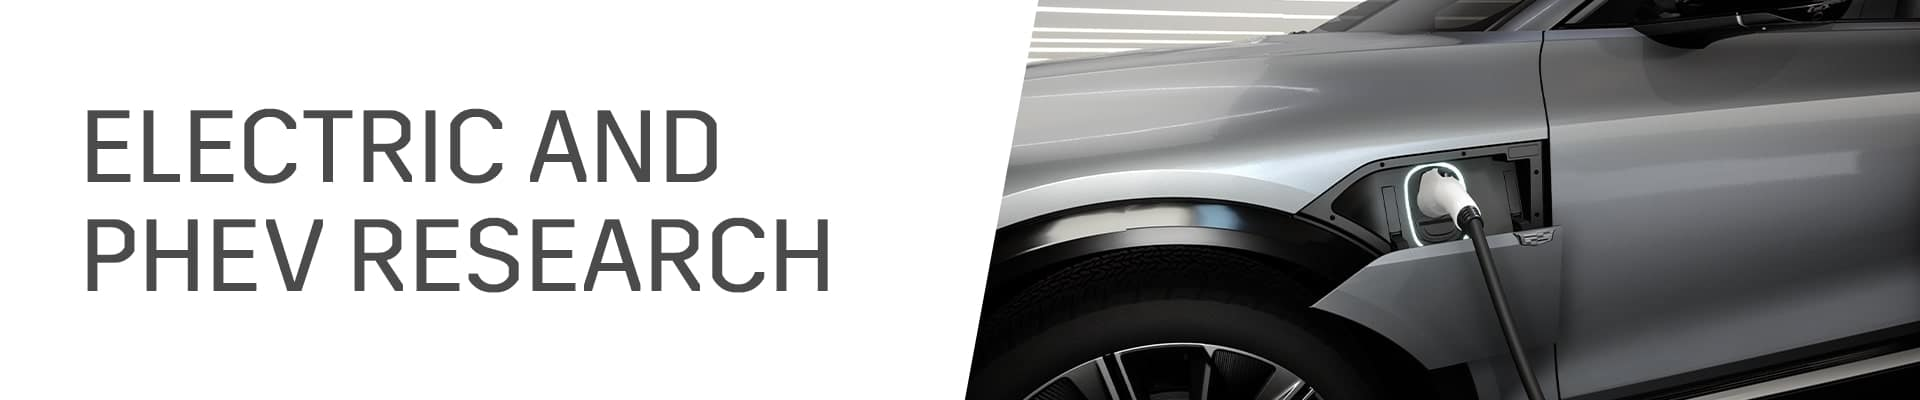 Electric and Plug-in Hybrid Research at Patrick Cadillac in Schaumburg, IL